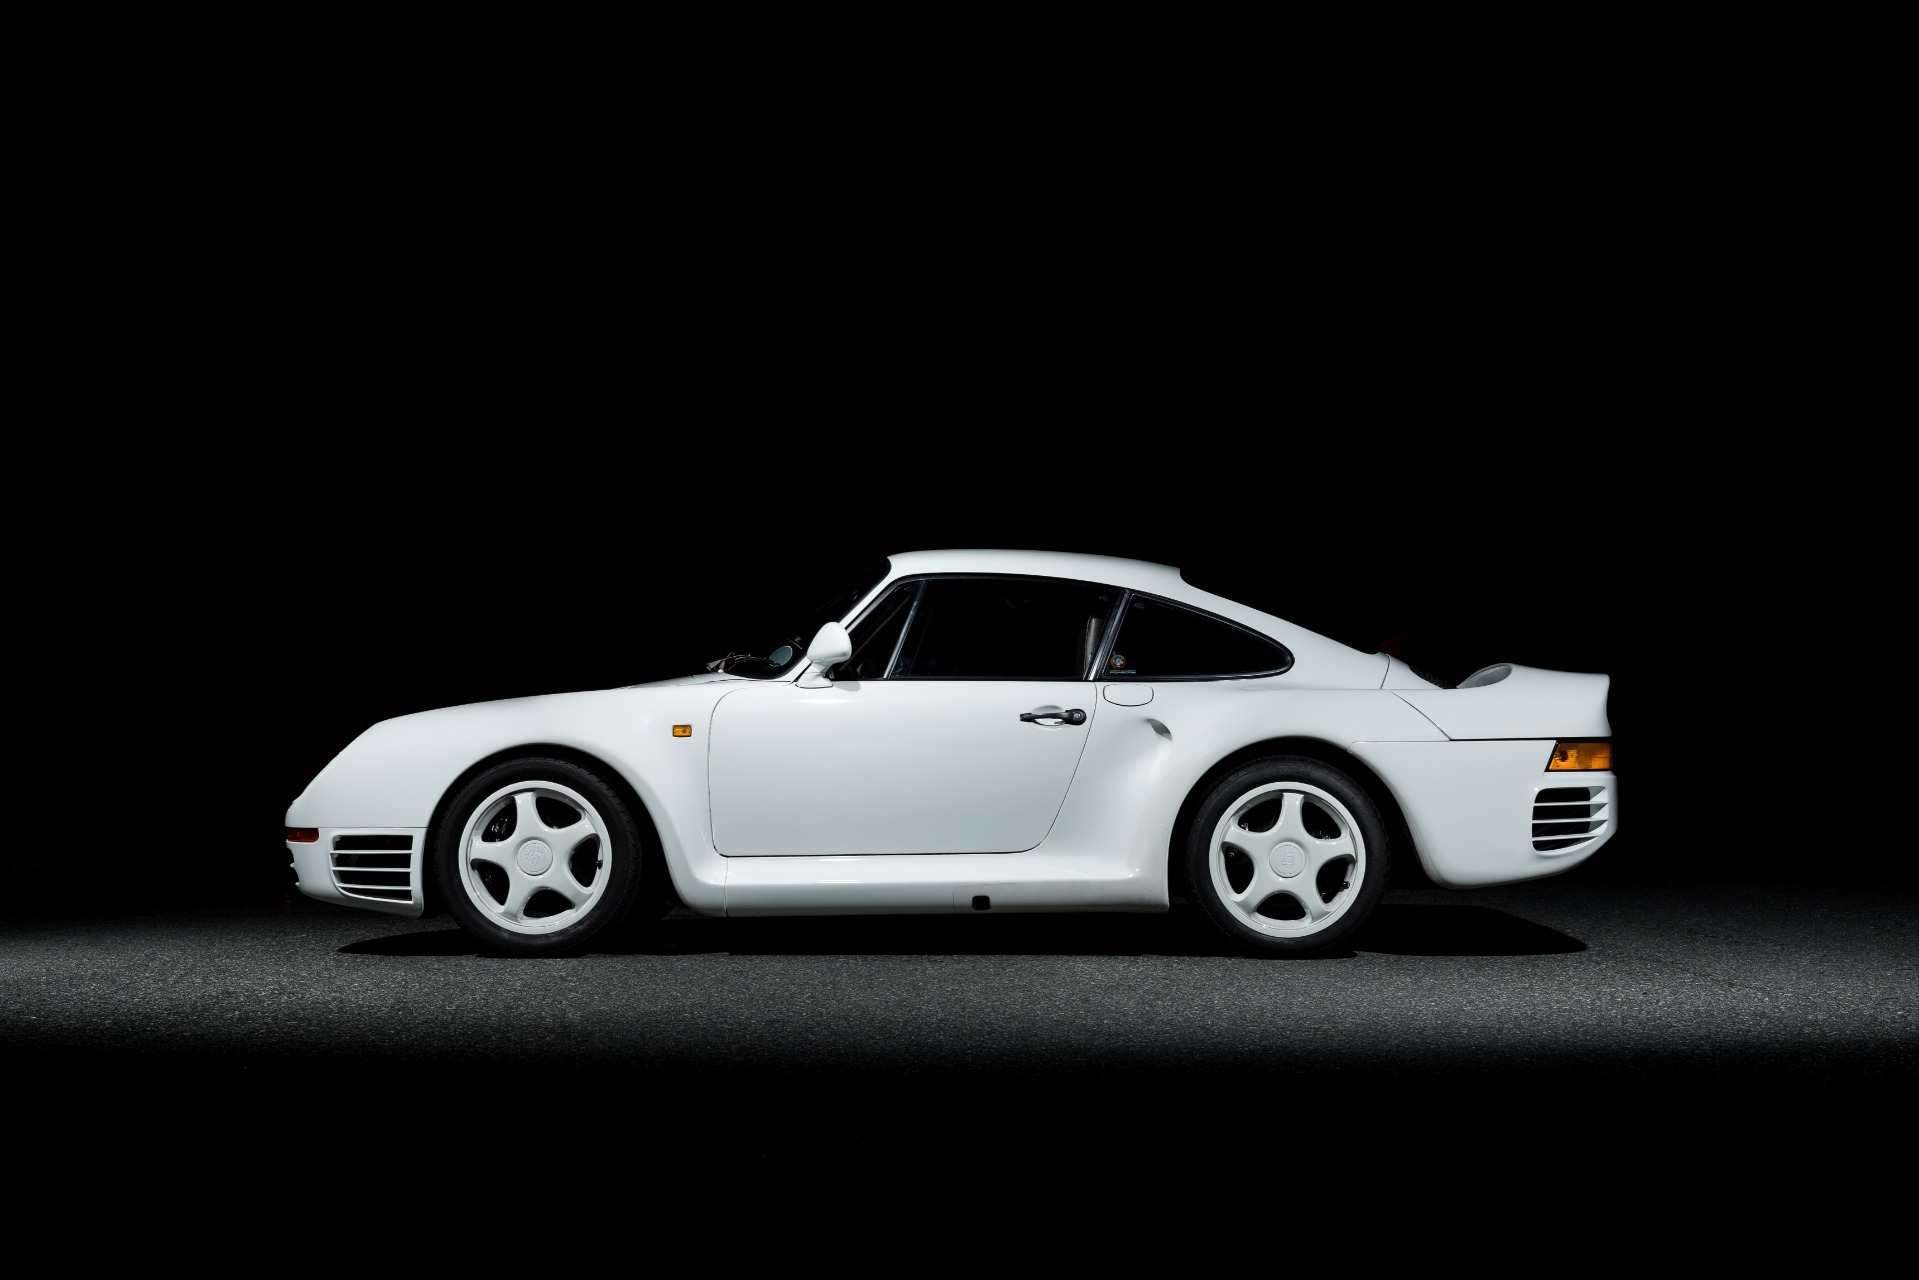 Used 1988 Porsche 959 KOMFORT COUPE / AWD / 6-SPEED MANUAL / ORIGINAL SUPERCAR for sale $1,425,000 at Formula Imports in Charlotte NC 28227 5